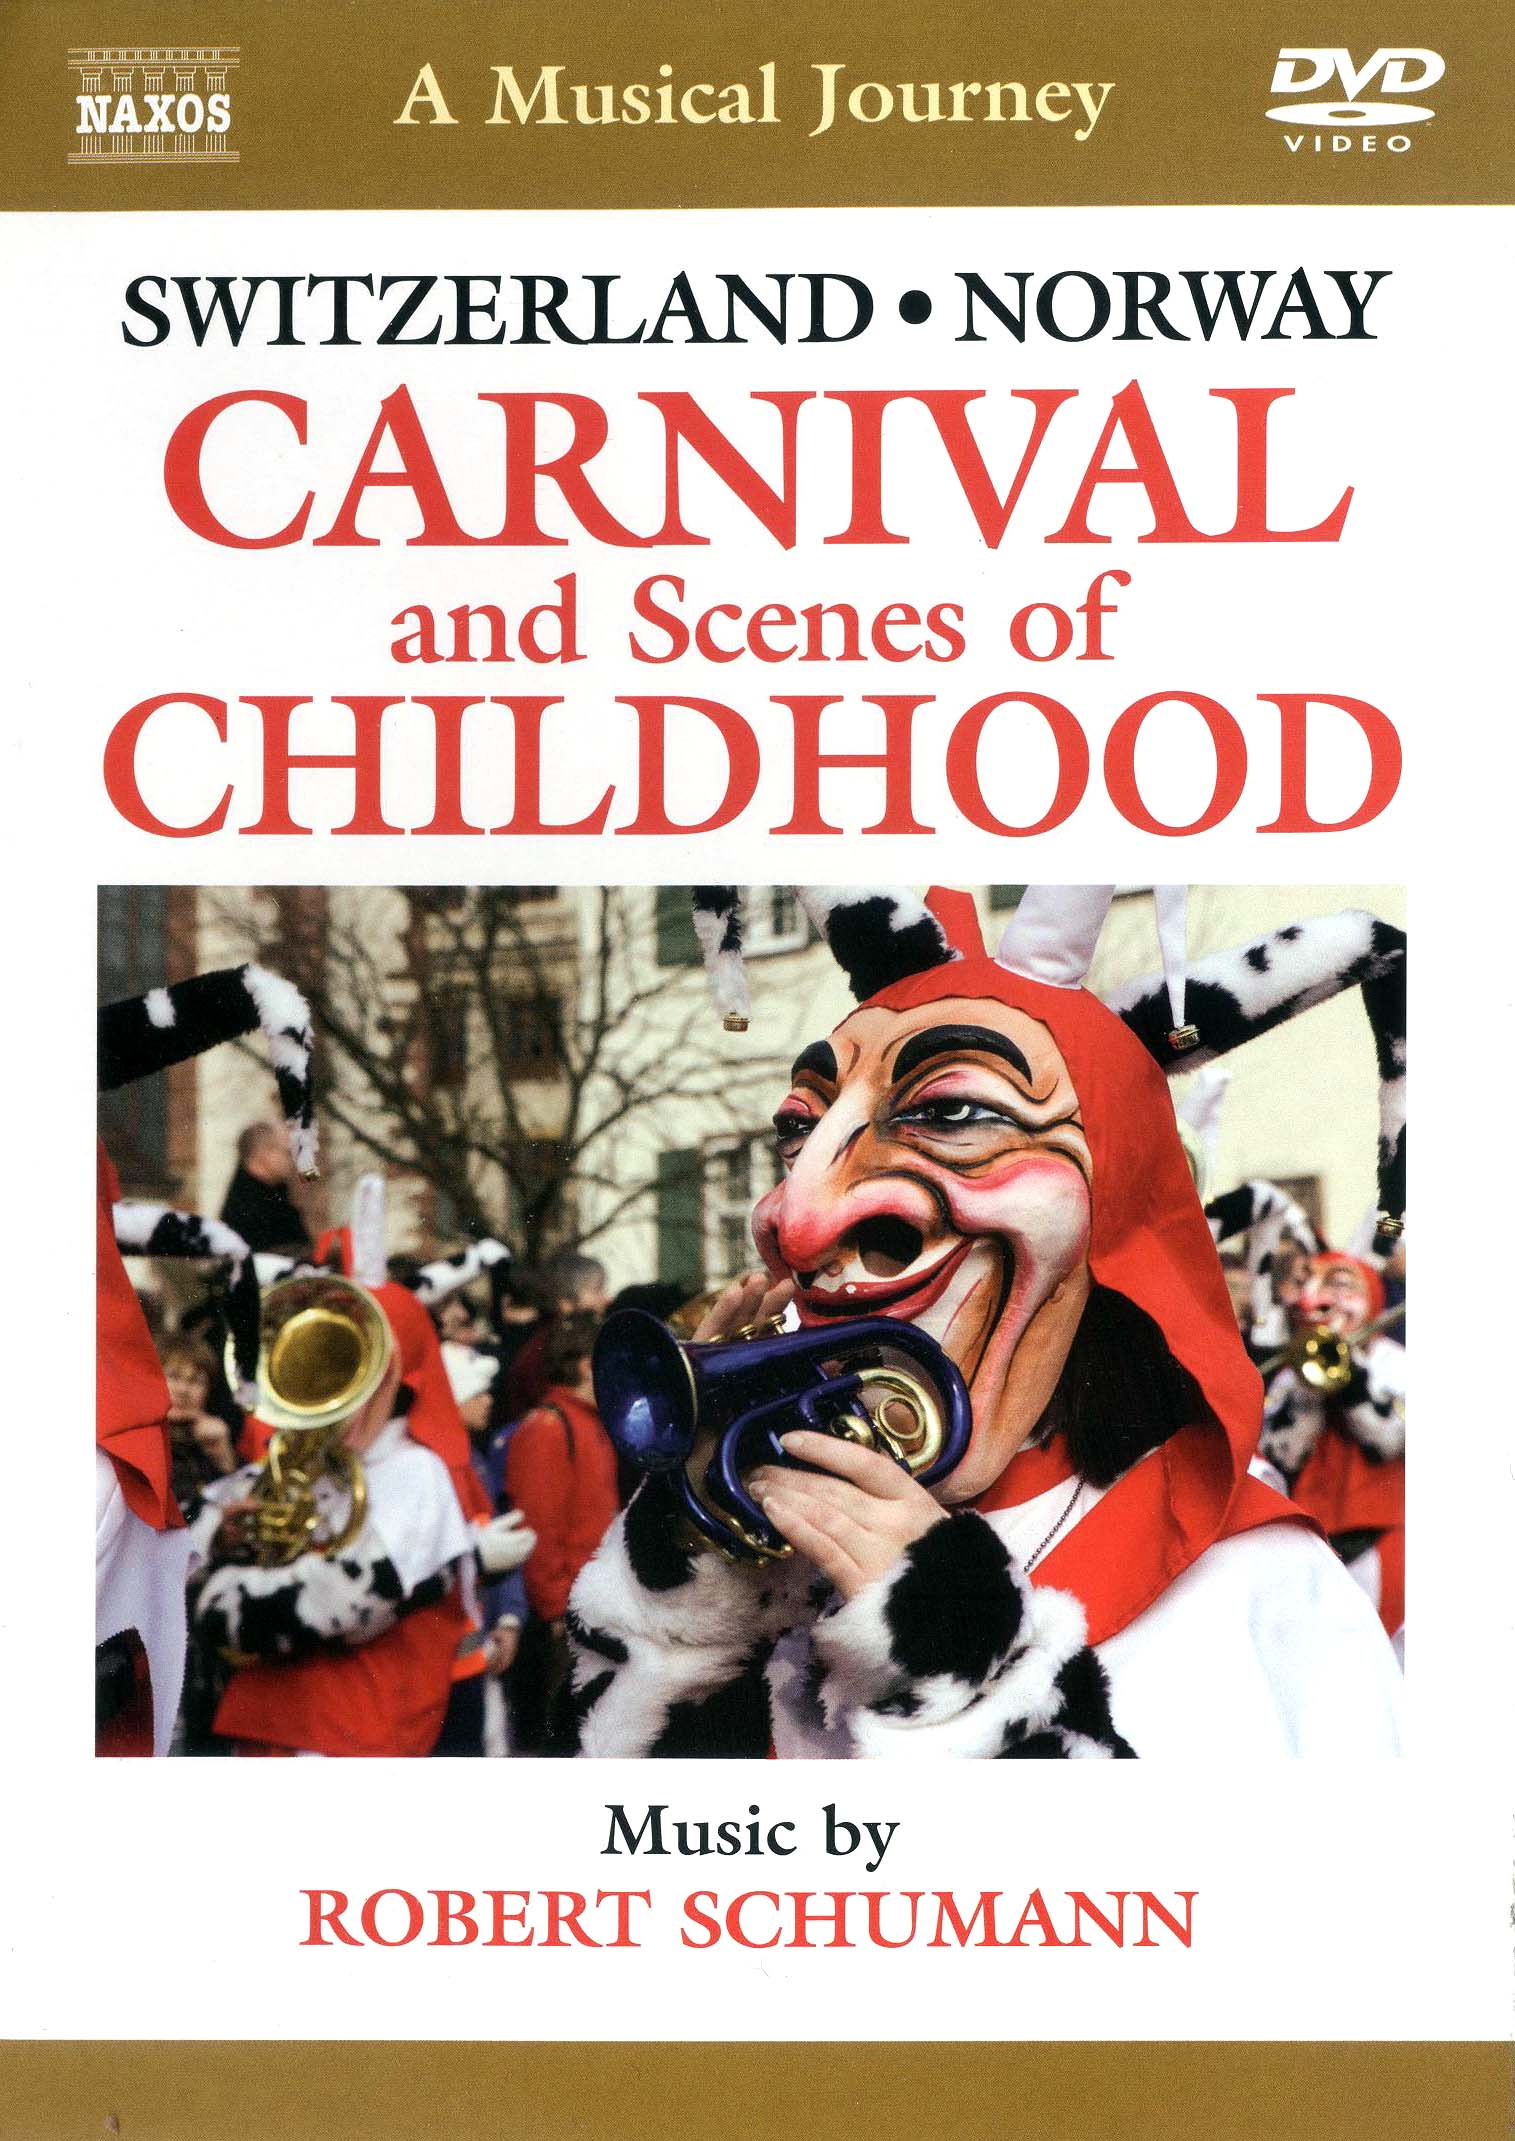 A Musical Journey: Switzerland/Norway - Carnival and Scenes of Childhood